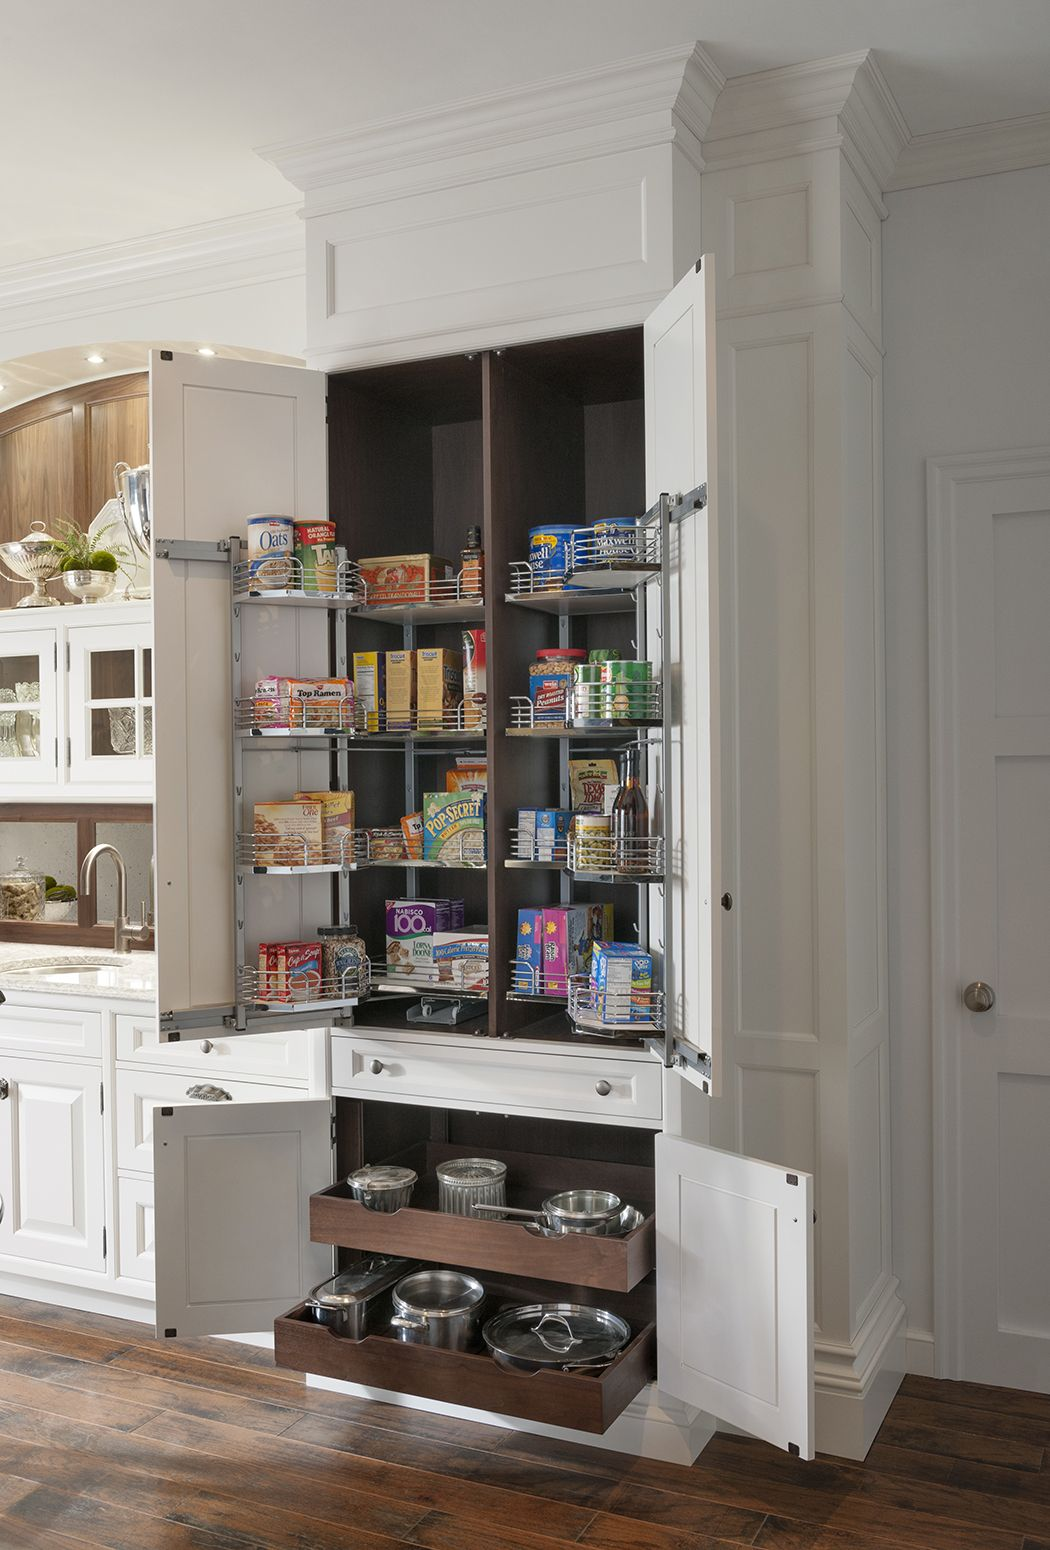 Yardley Butler S Pantry By Woodmode With Complementary Walnut Highlights And Interiors Wood Mode Custom Kitchen Cabinets Custom Cabinetry